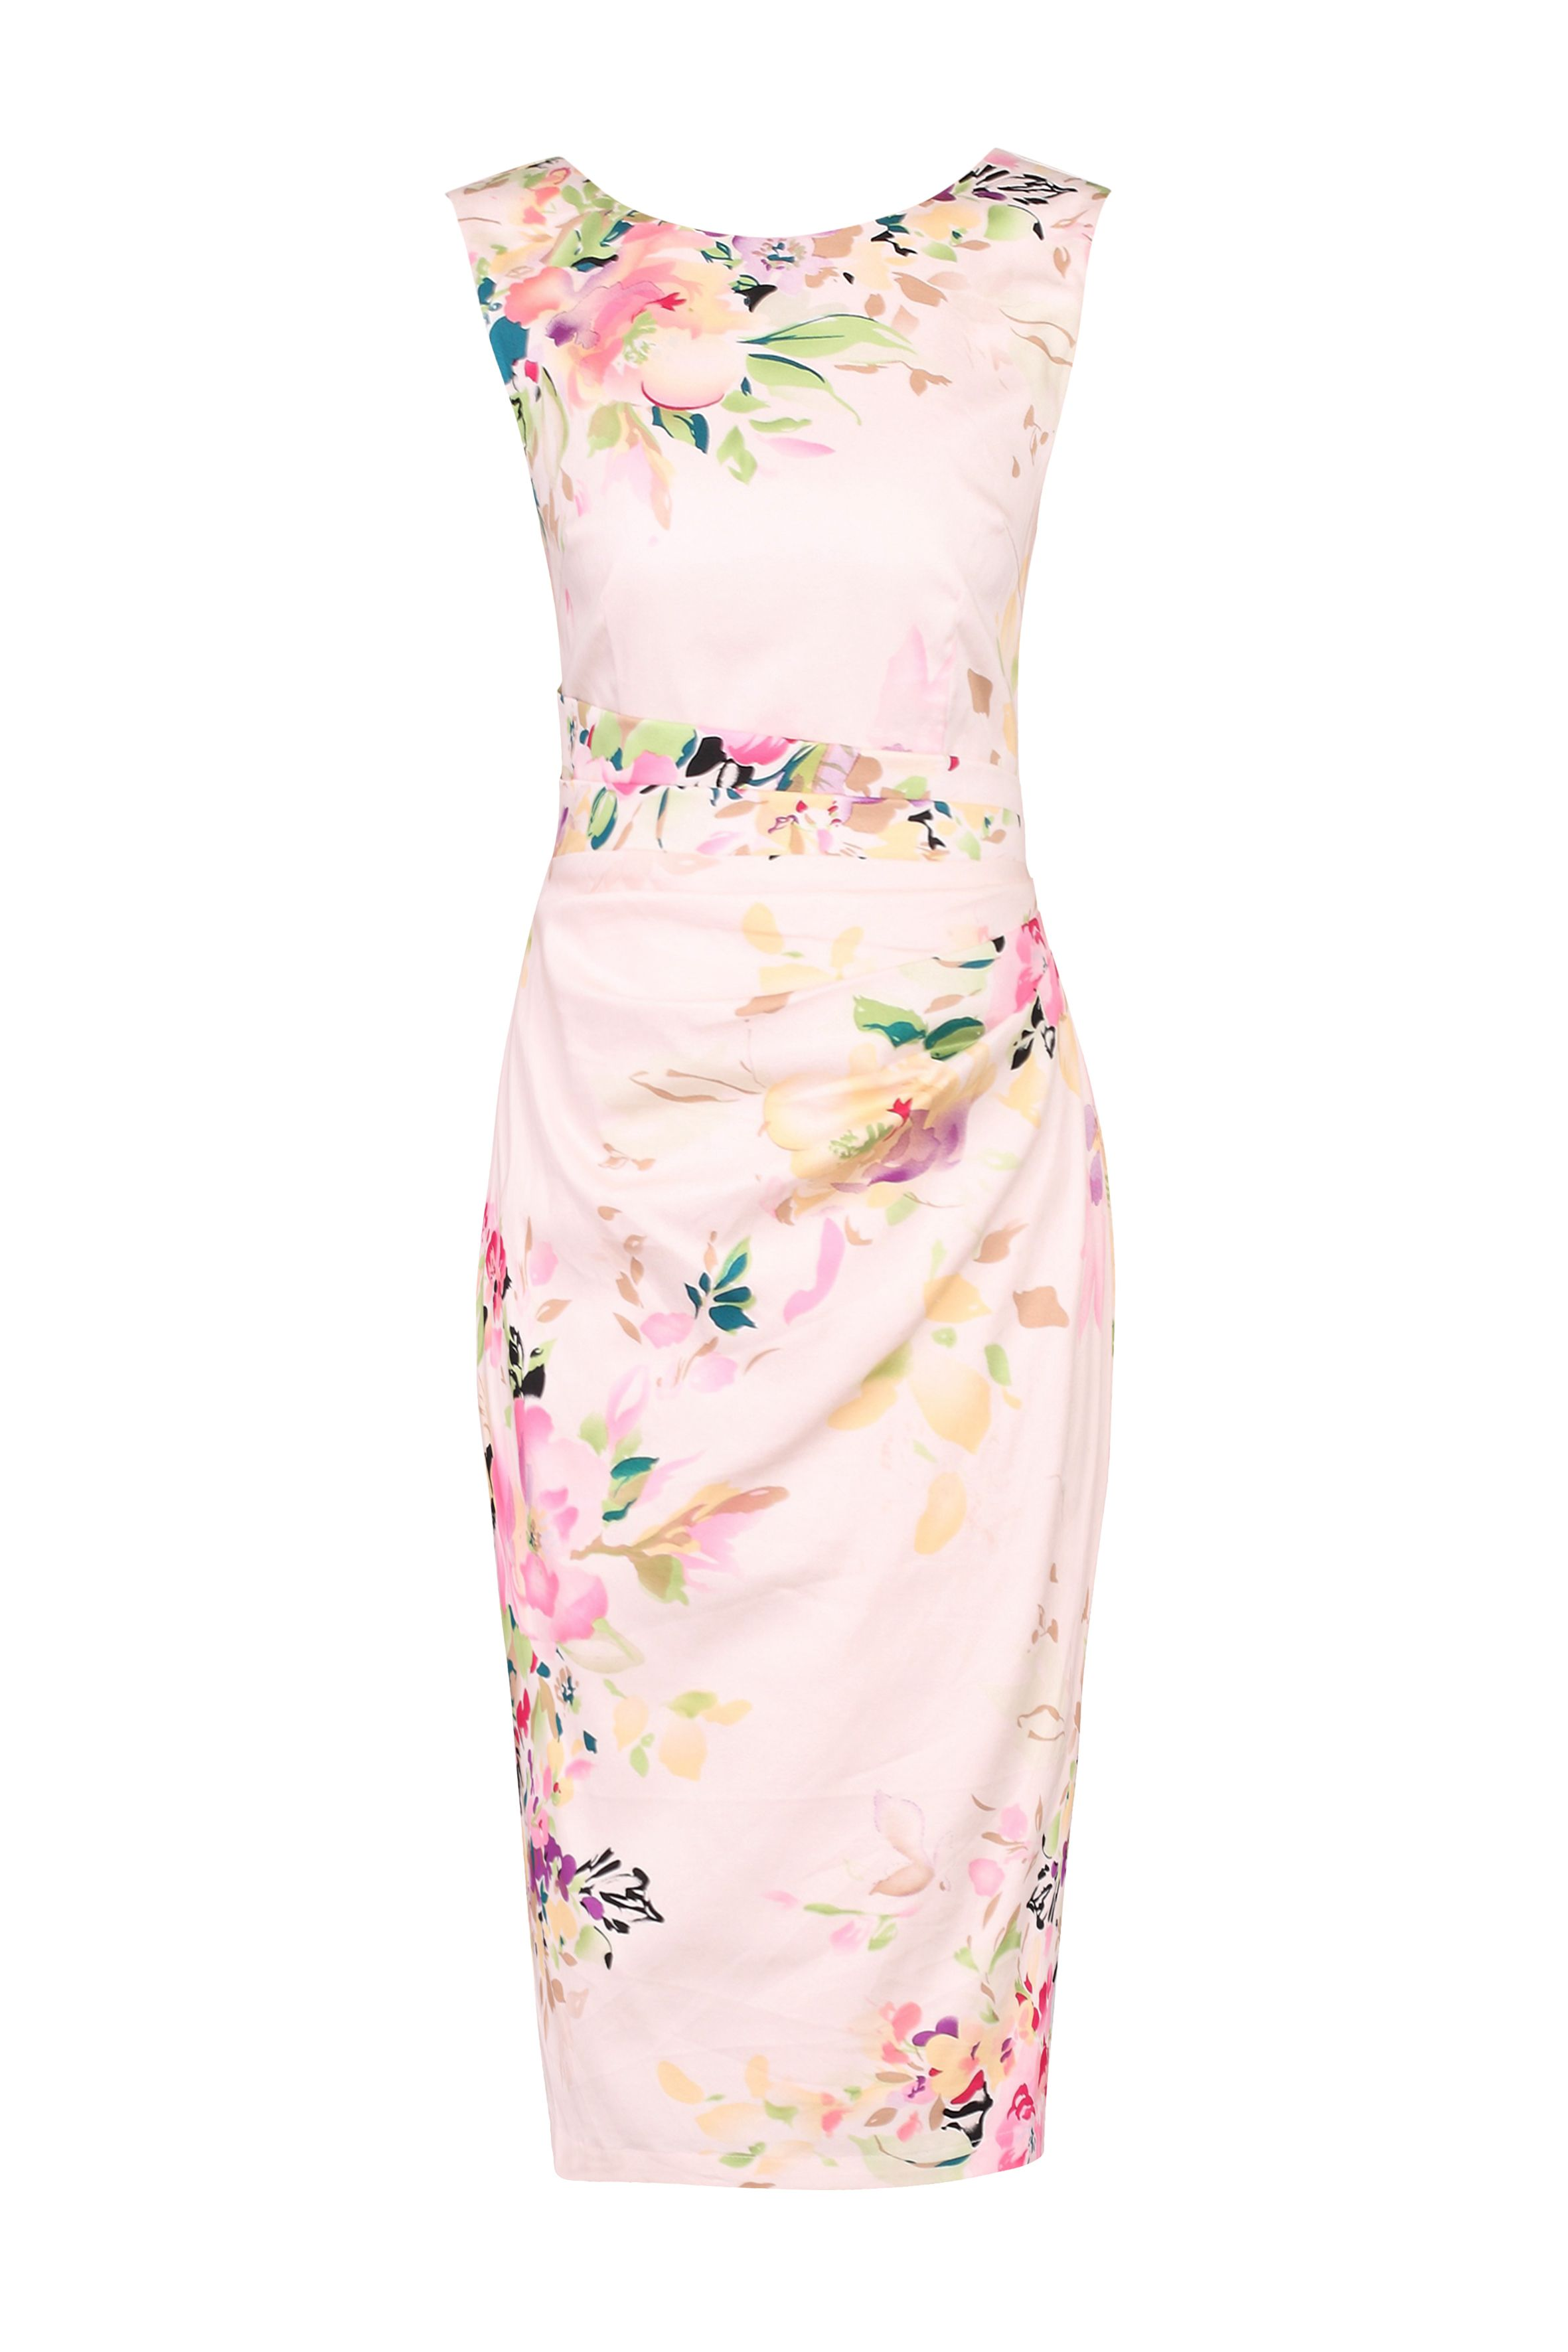 Jolie Moi Floral Print Cotton Shift Dress, Pink